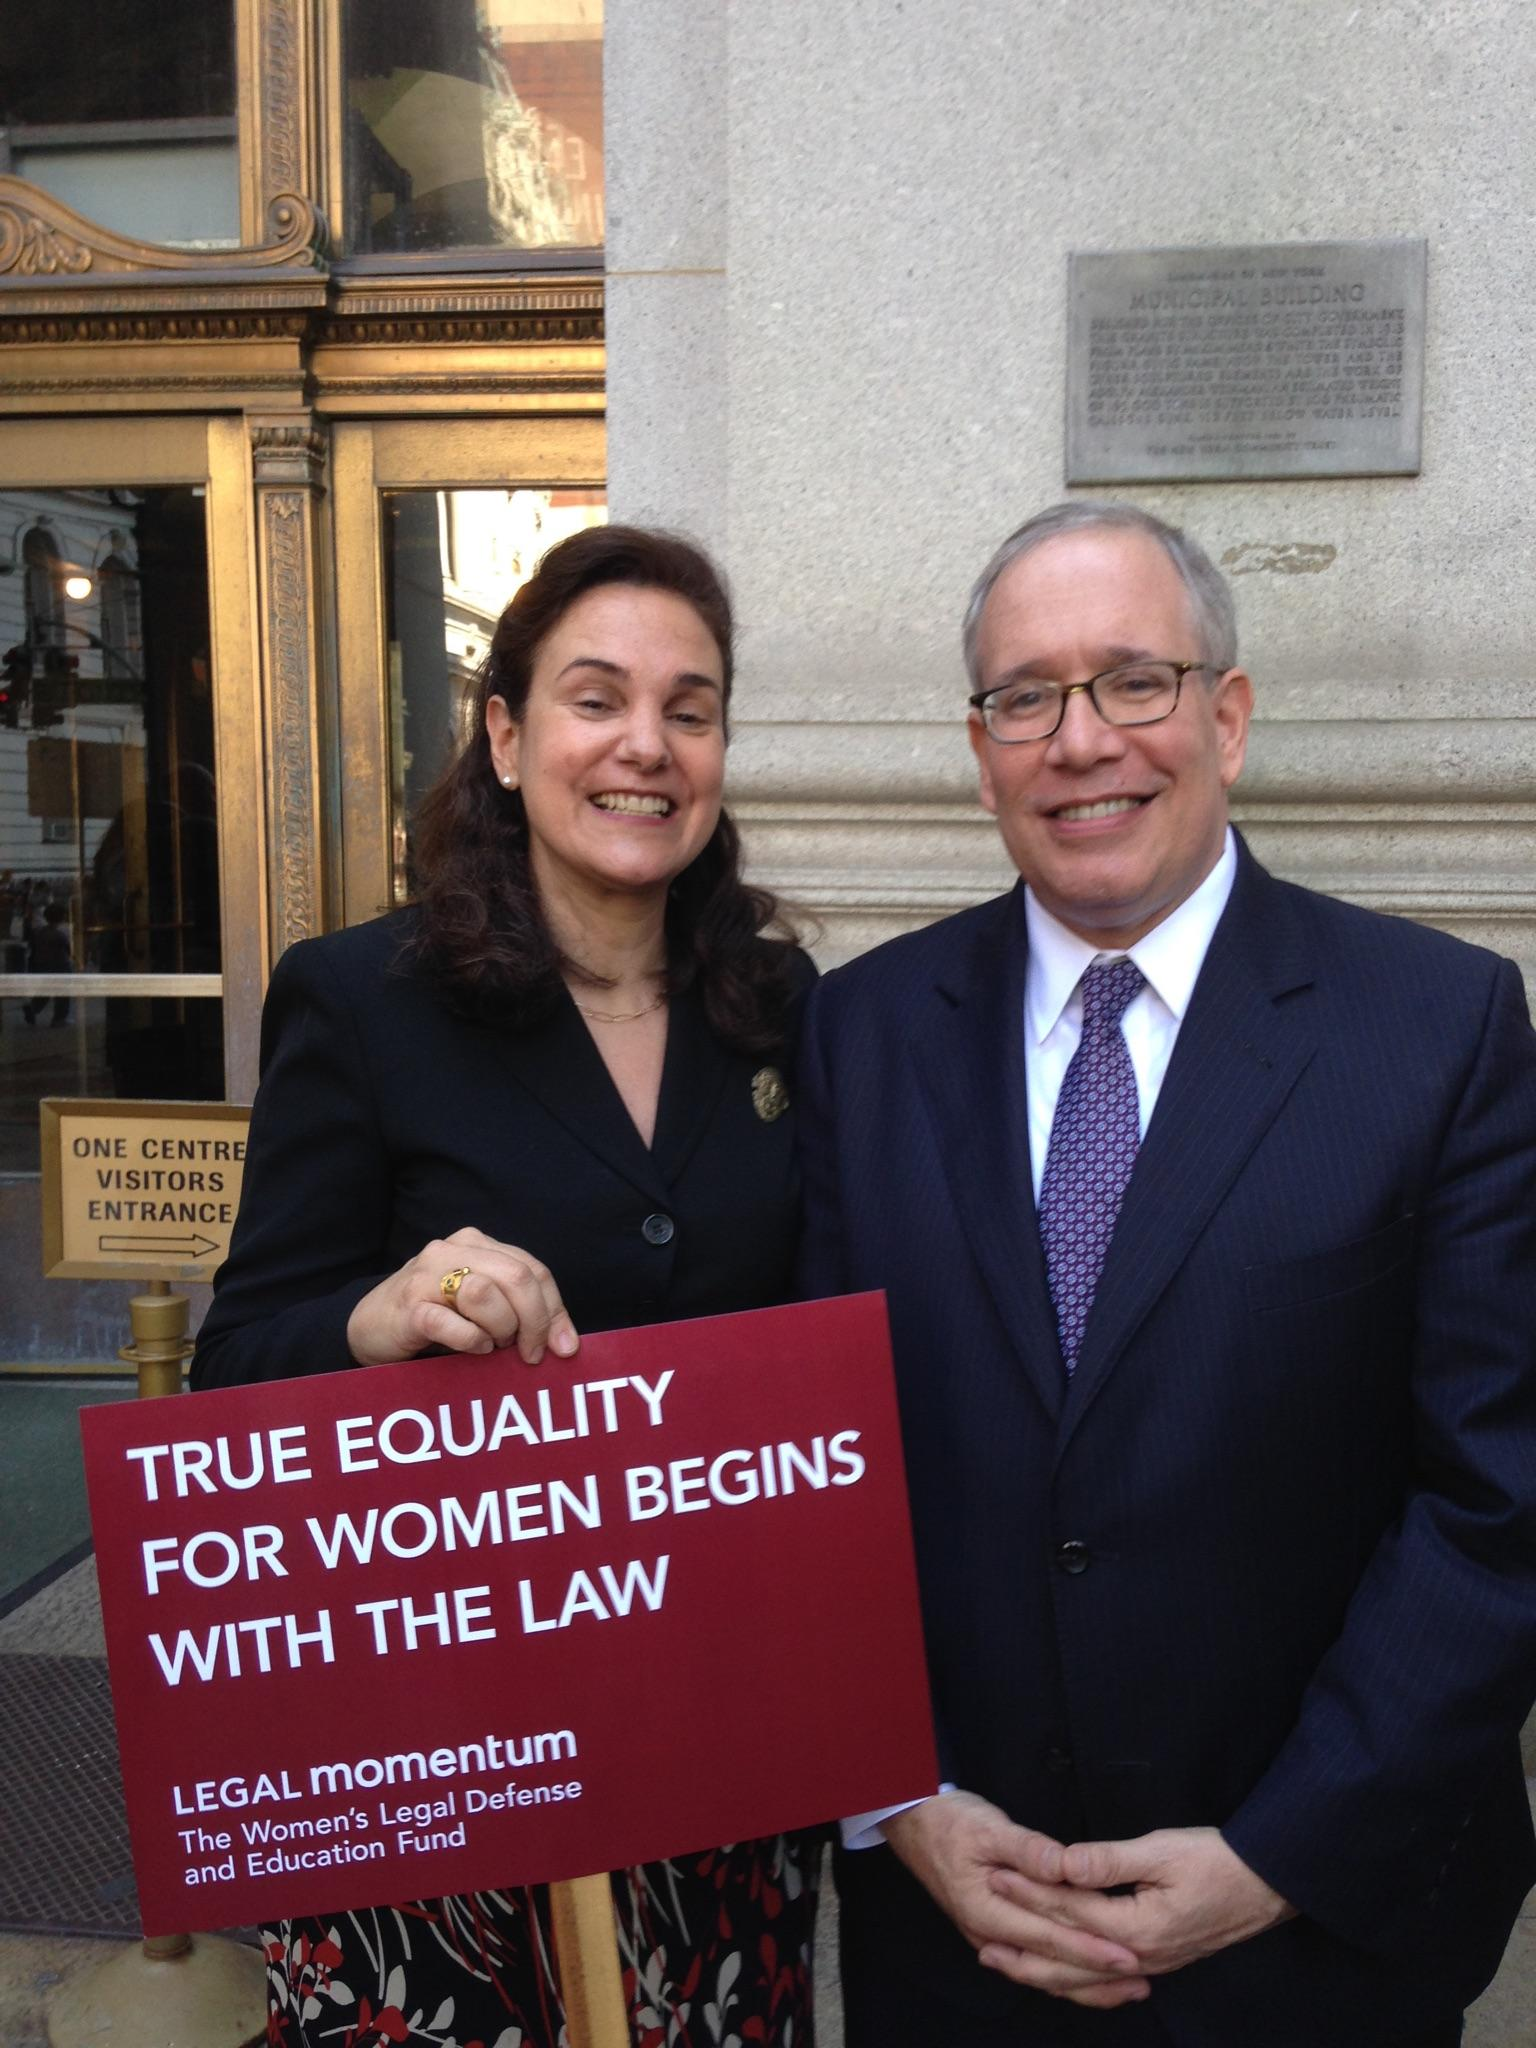 Penny Venetis and Scott Stringer